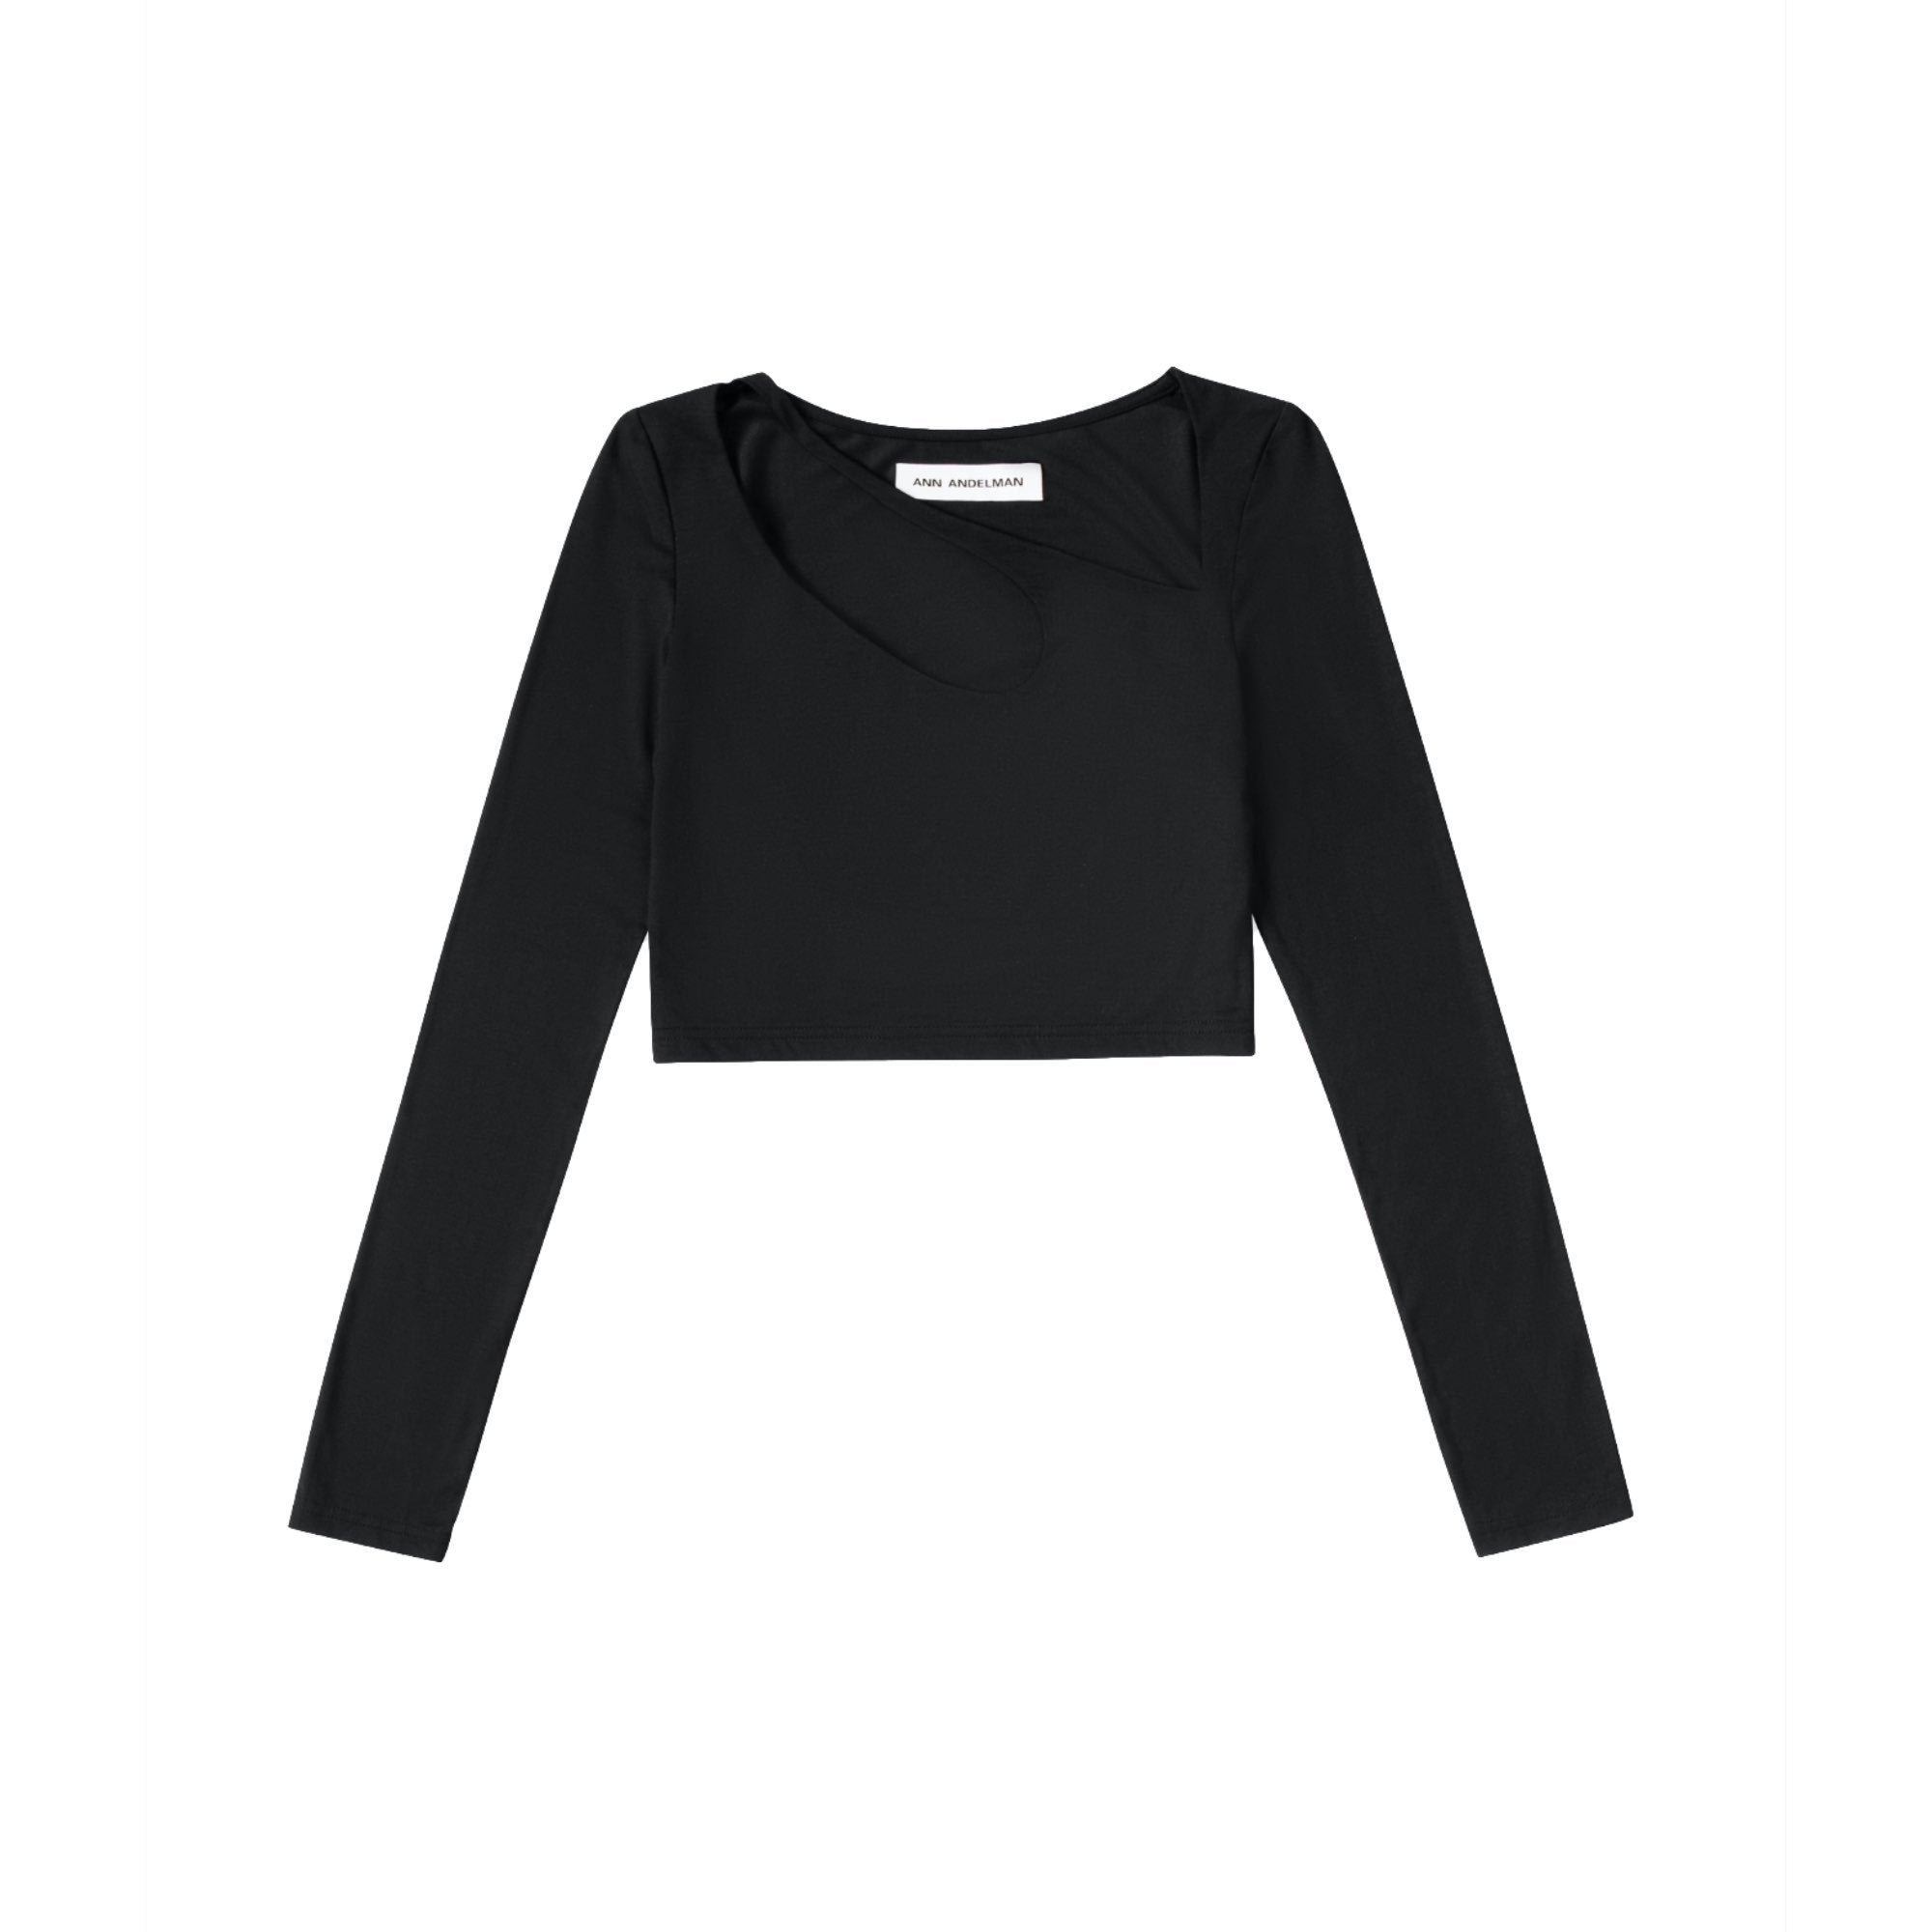 ANN ANDELMAN Black U-Neck Top | MADA IN CHINA